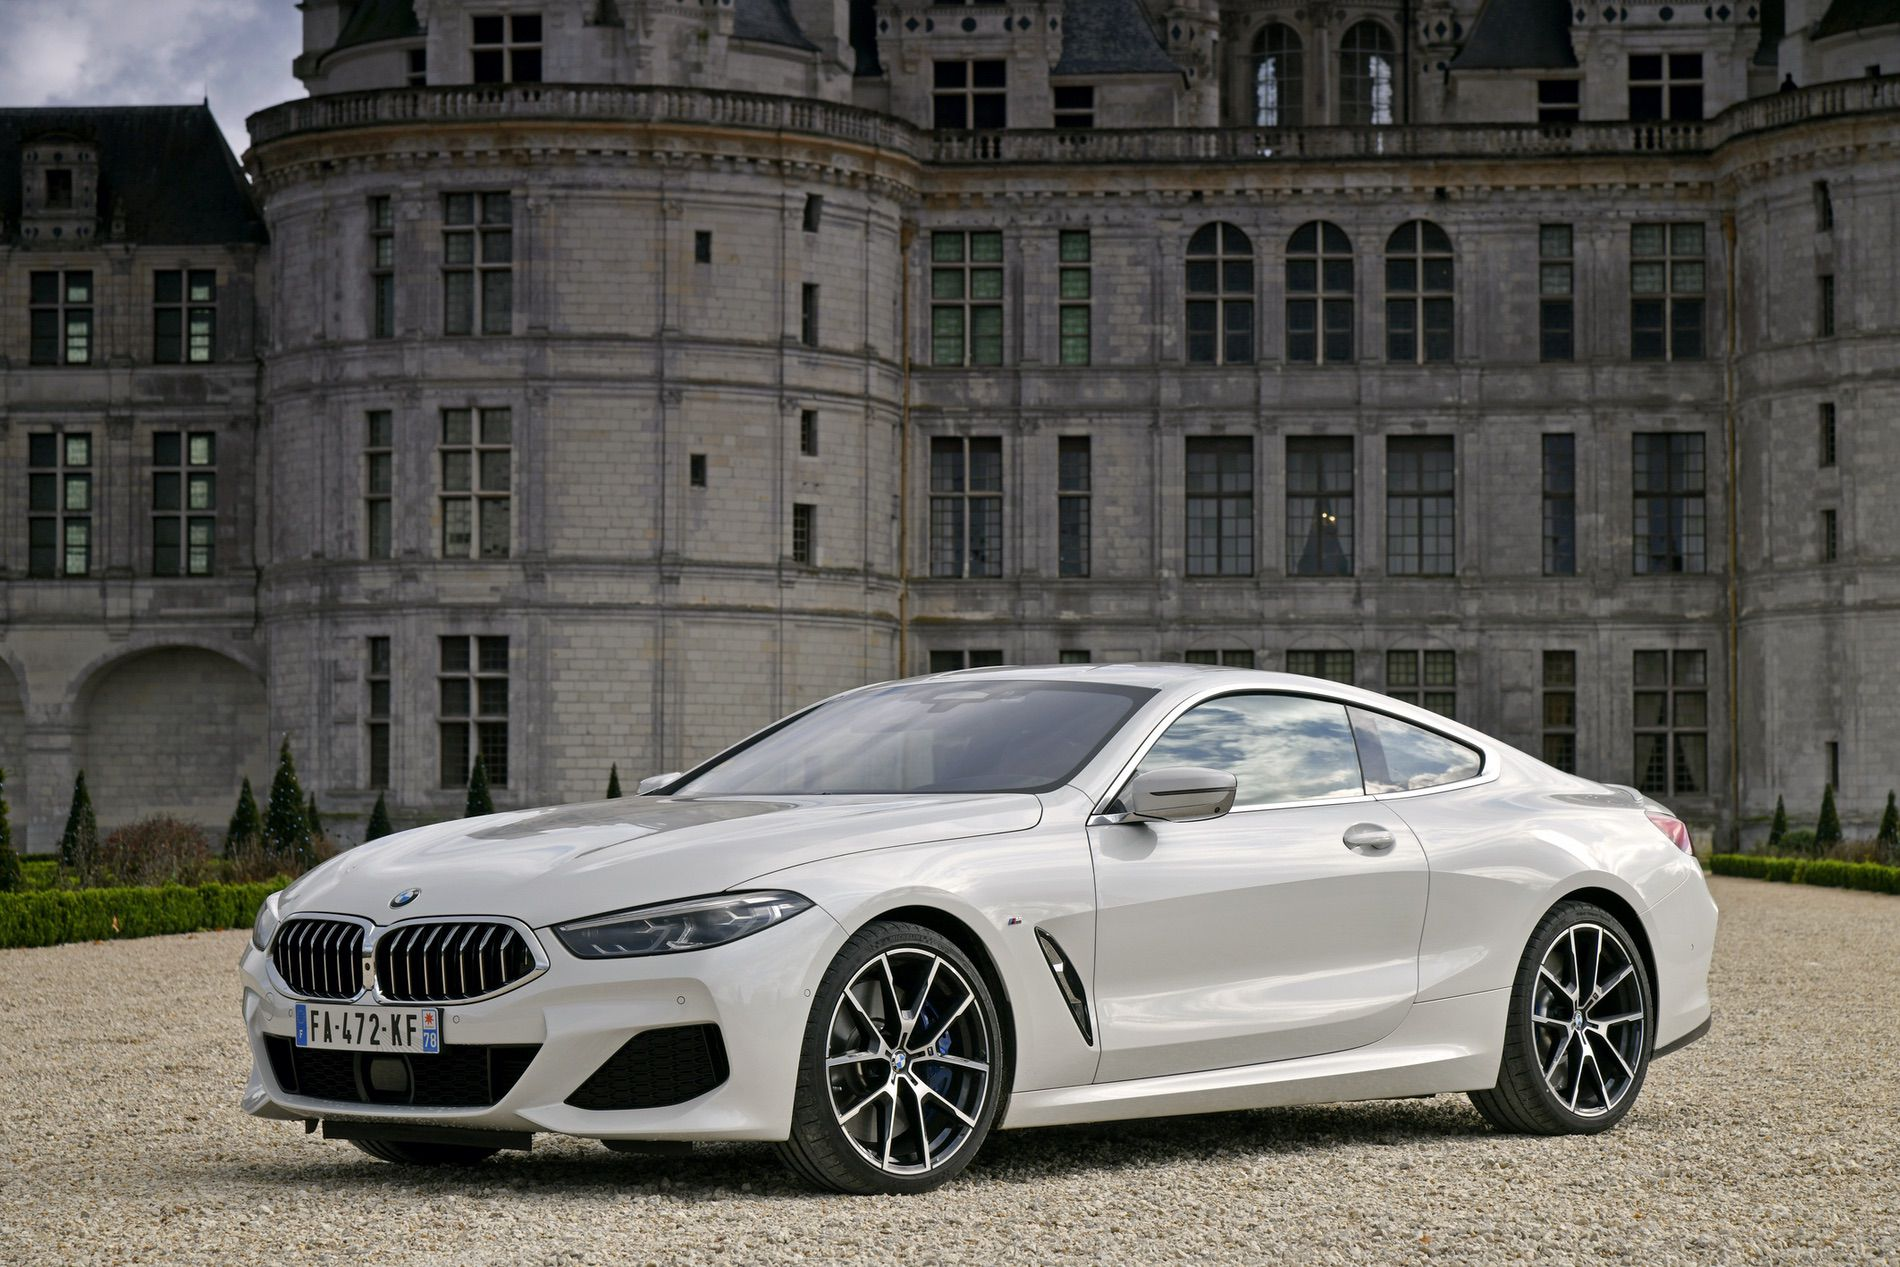 BMW 840d xDrive Mineral White 12